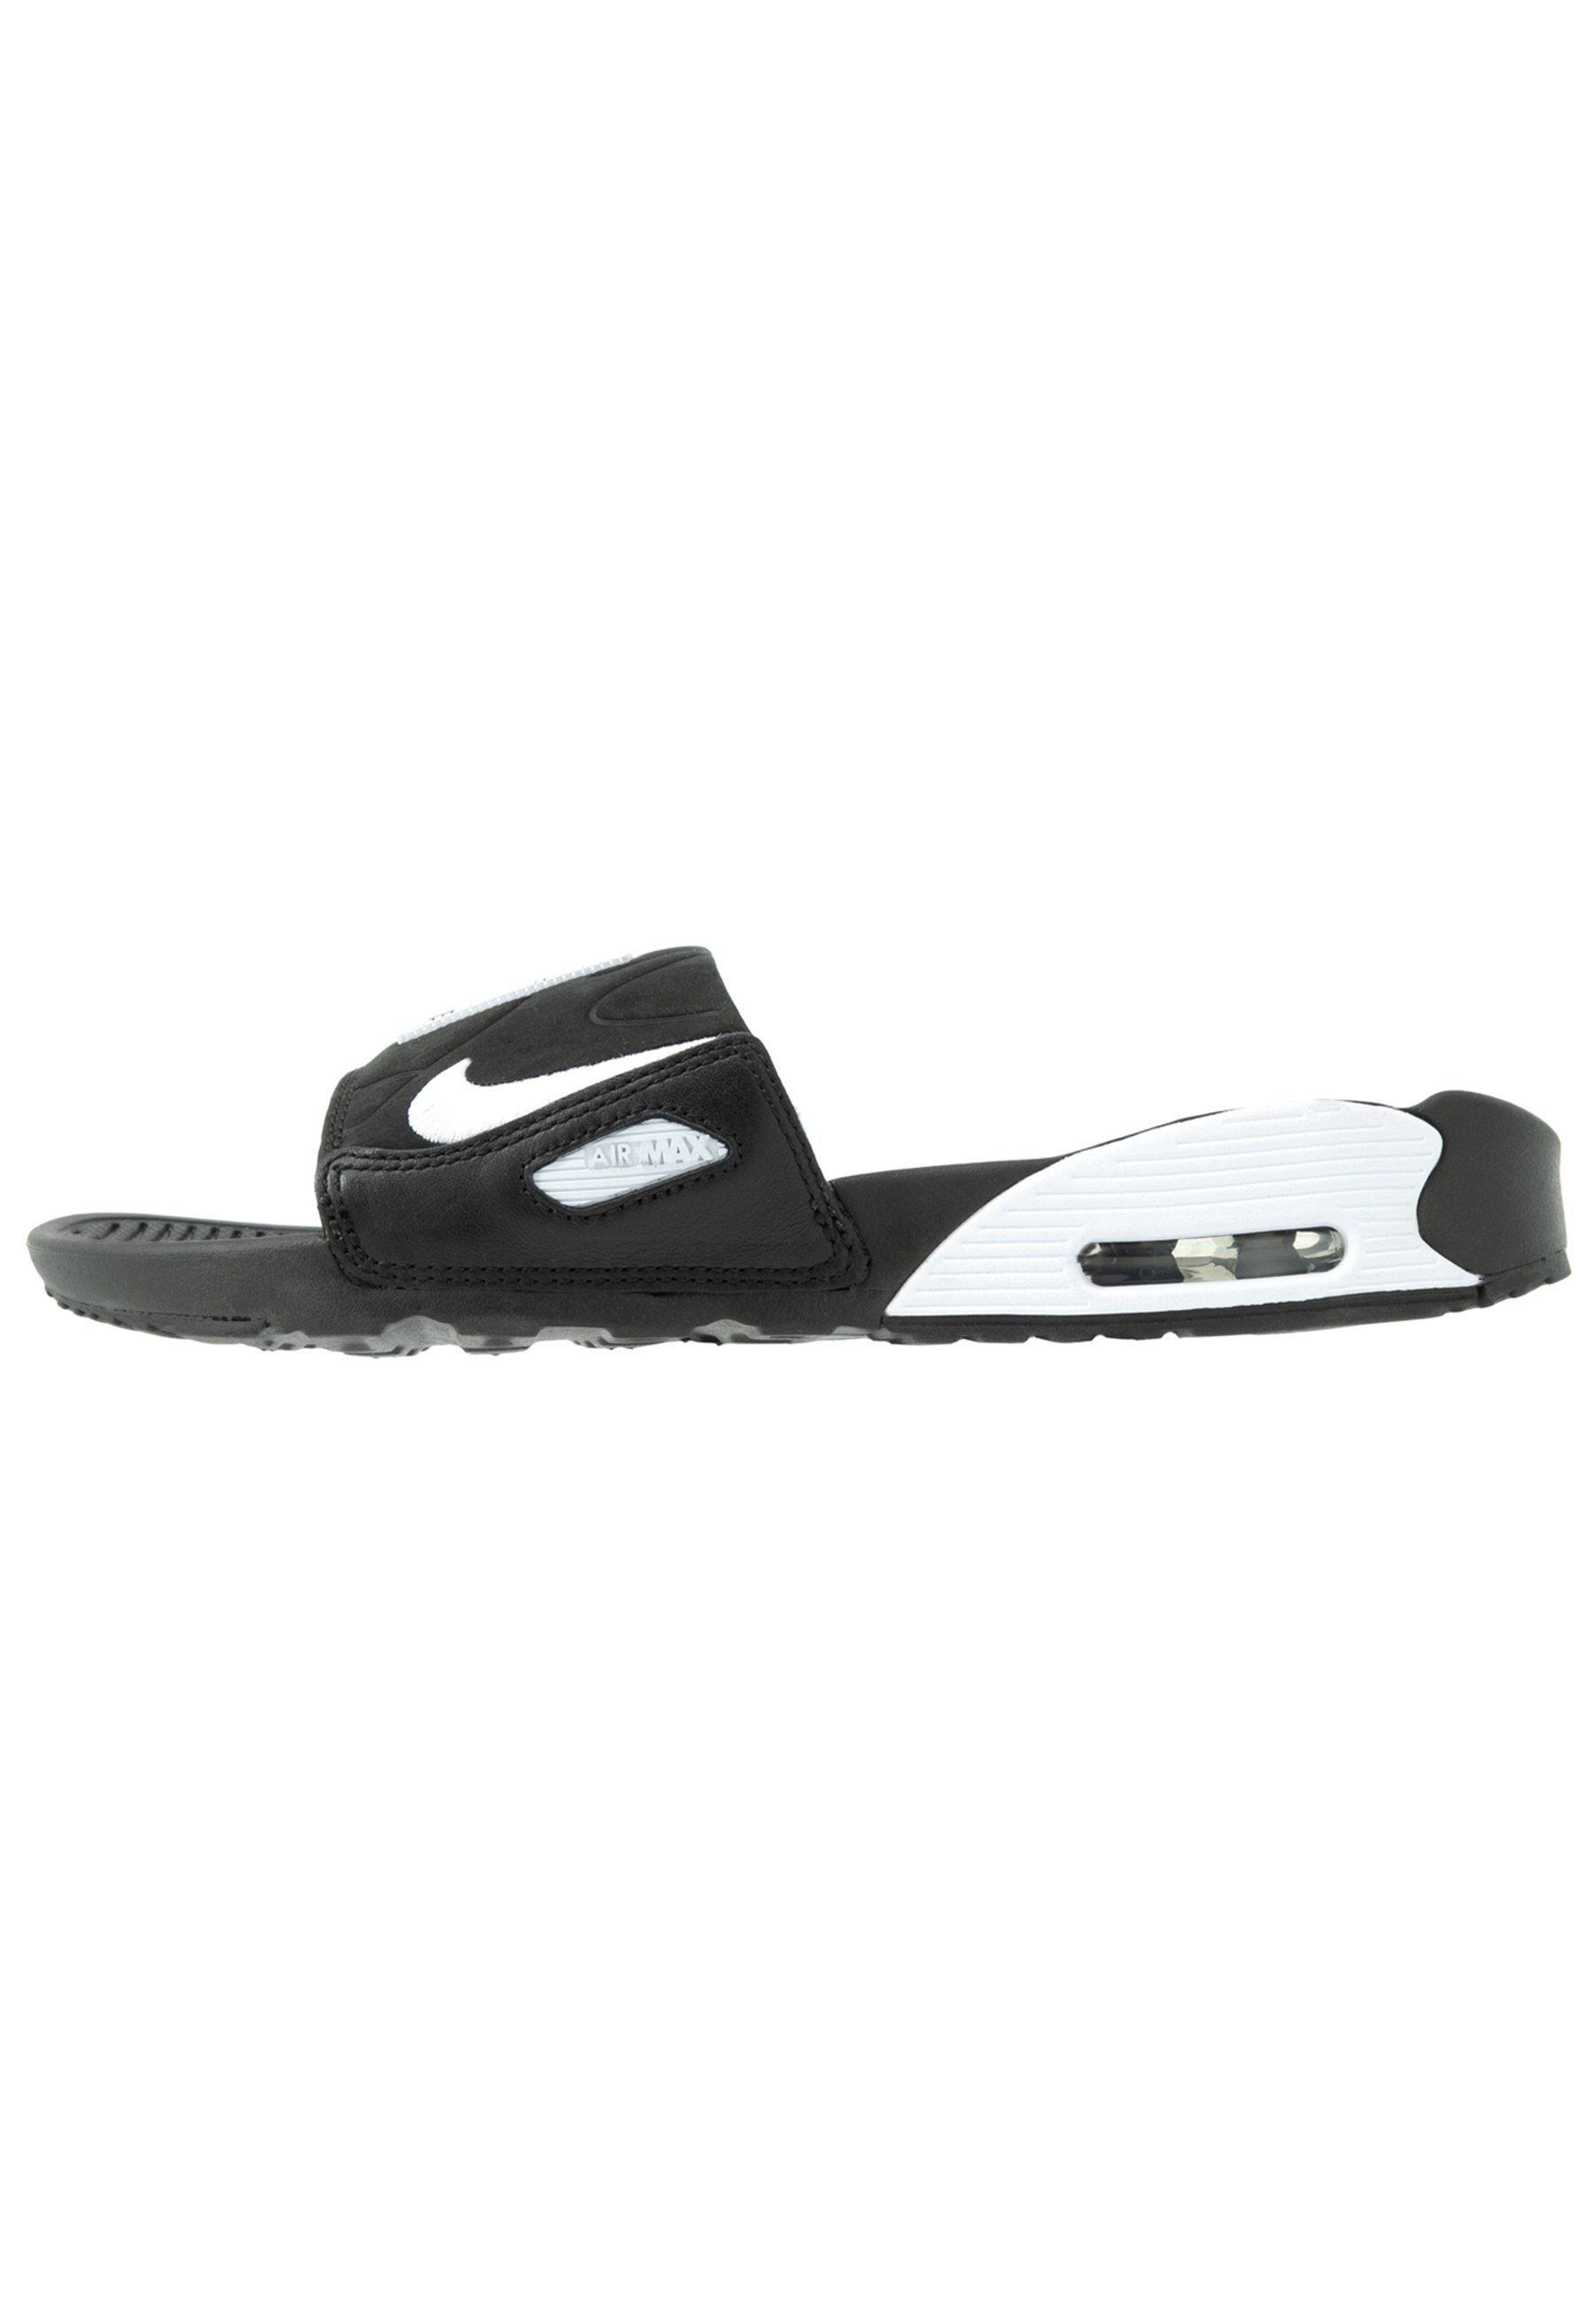 NIKE AIR MAX 90 DAMEN SLIDES Badesandale blackwhite